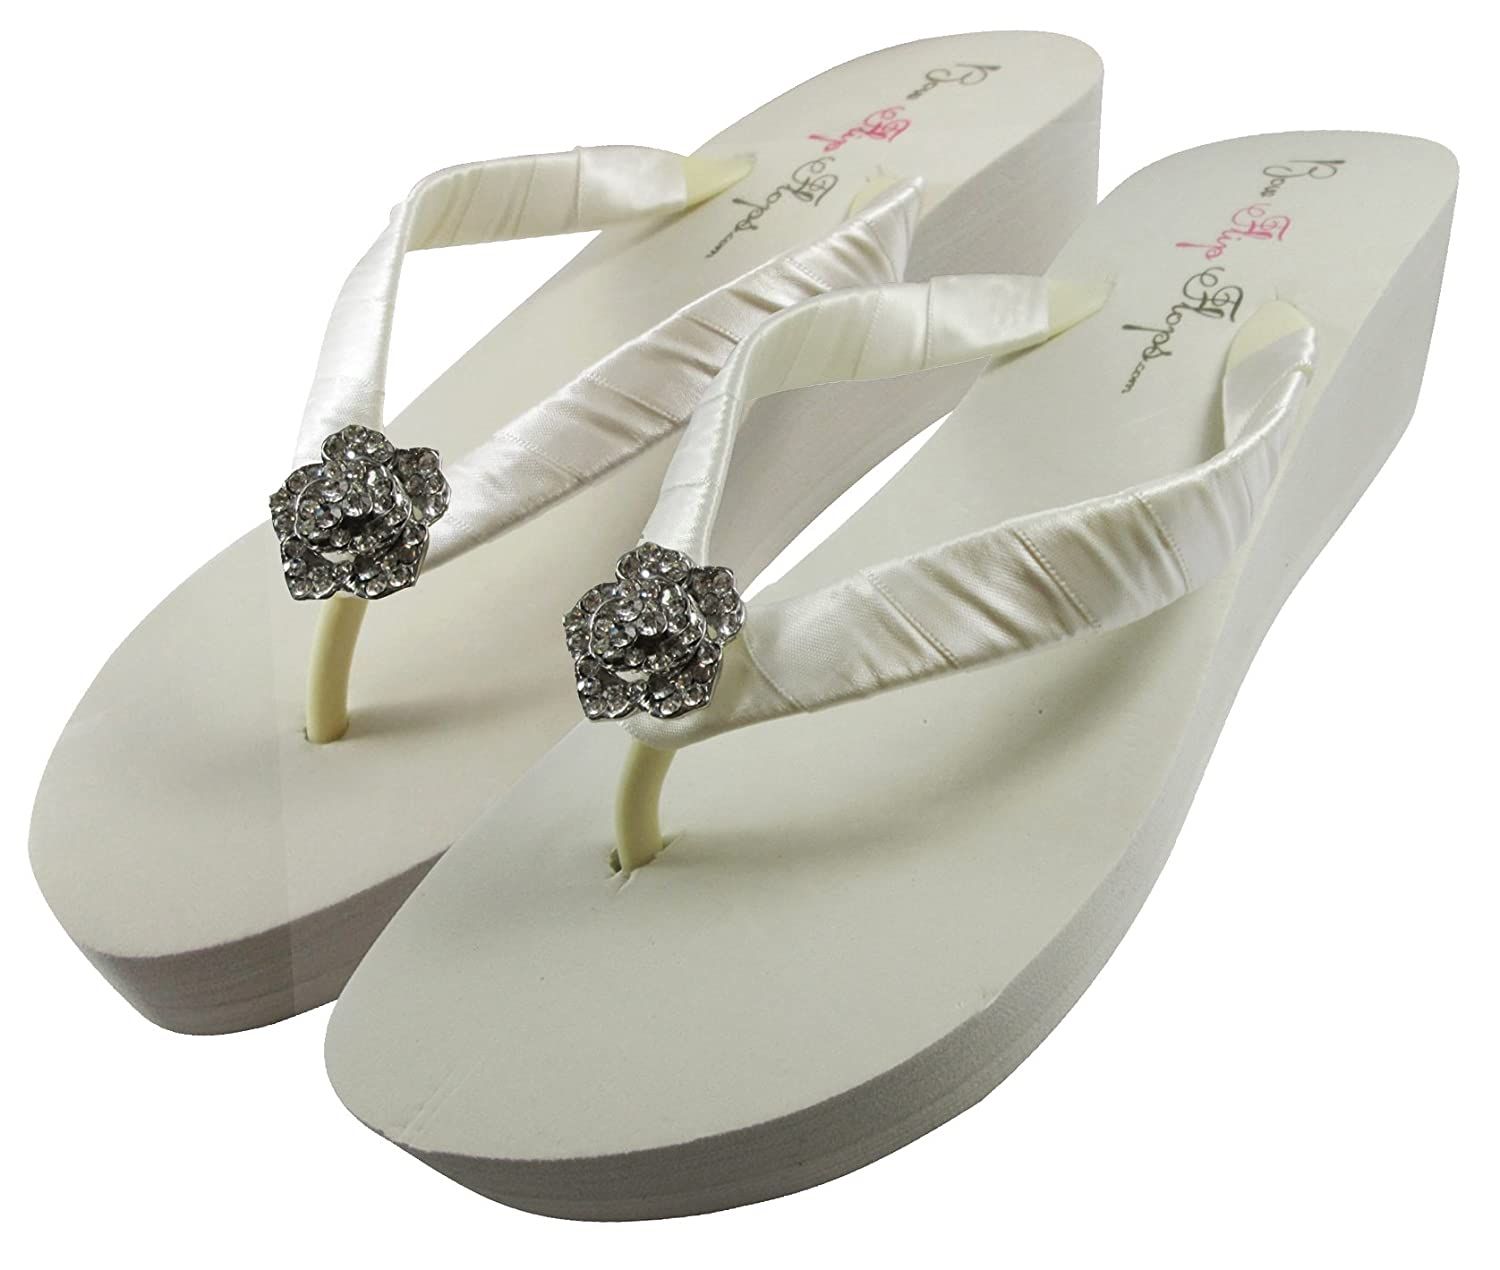 96151cb0e Amazon.com  Bridal Flip Flops Wedding Ivory Wedge White Platform Bride Rose  Heel Satin Rhinestone Flip Flops  Handmade